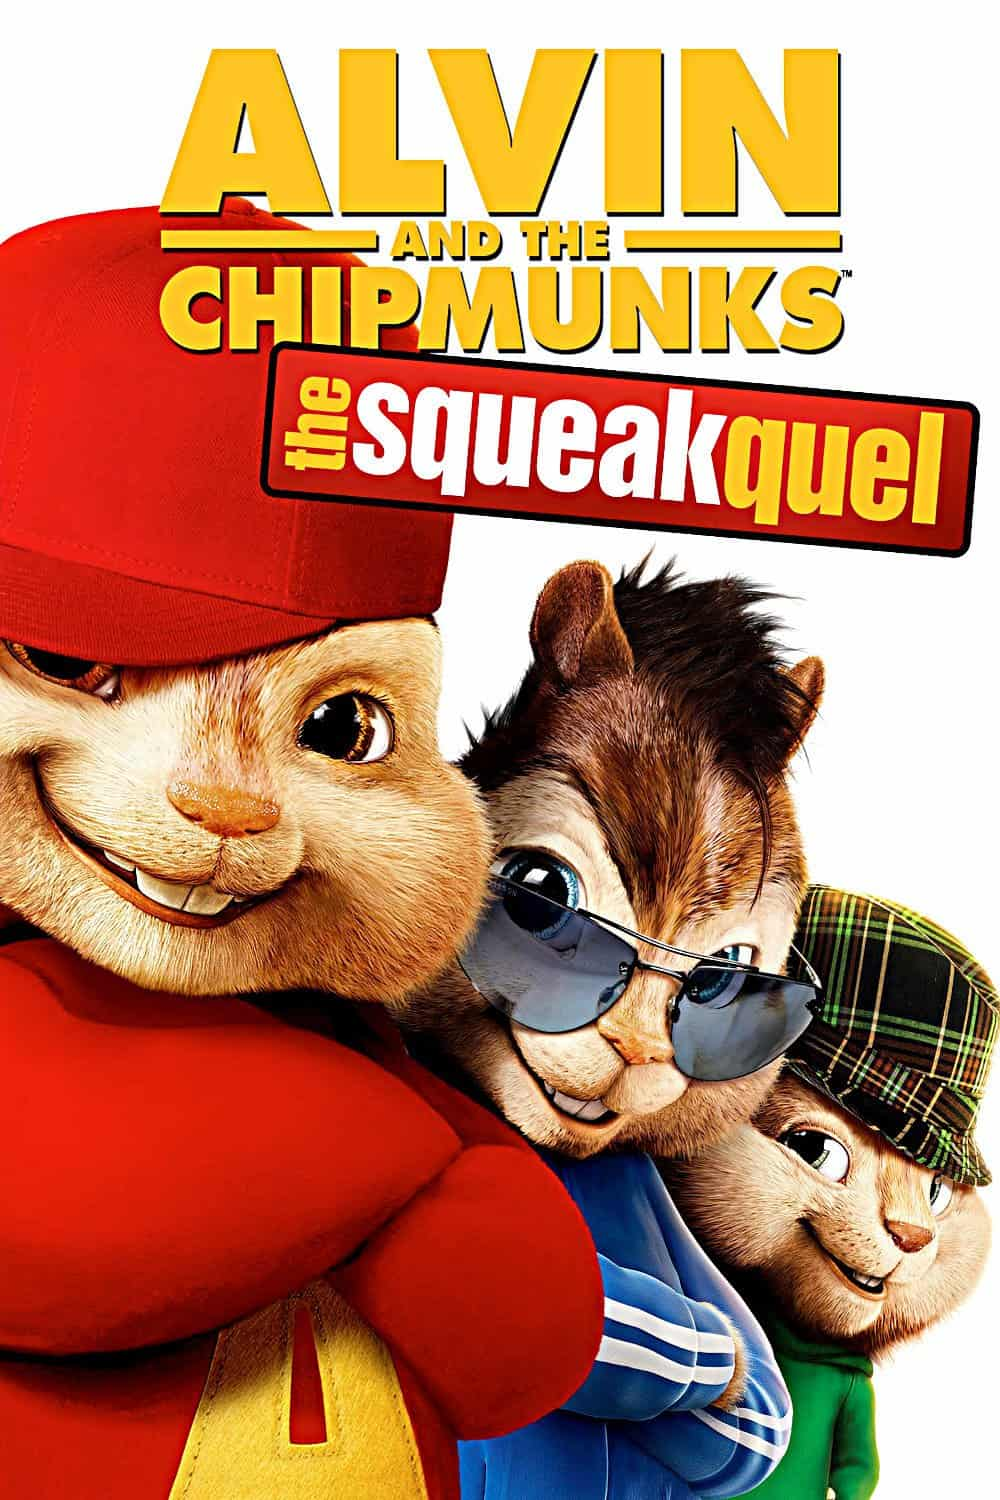 Alvin and the Chipmunks: The Squeakquel, 2009